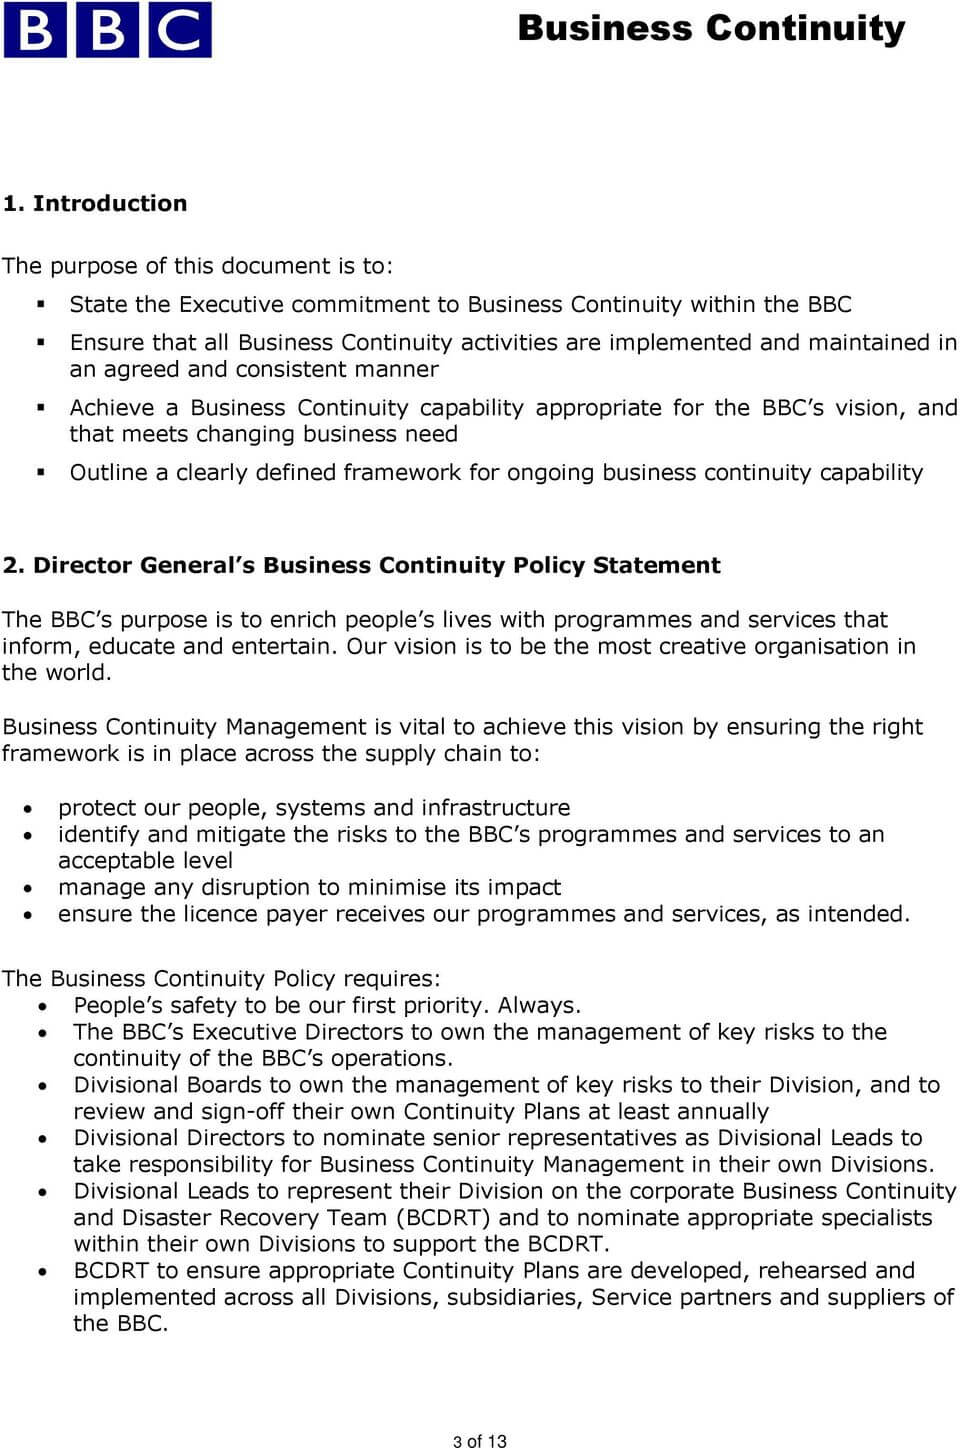 Business Continuity Management Policy - Pdf Free Download Intended For Business Continuity Management Policy Template